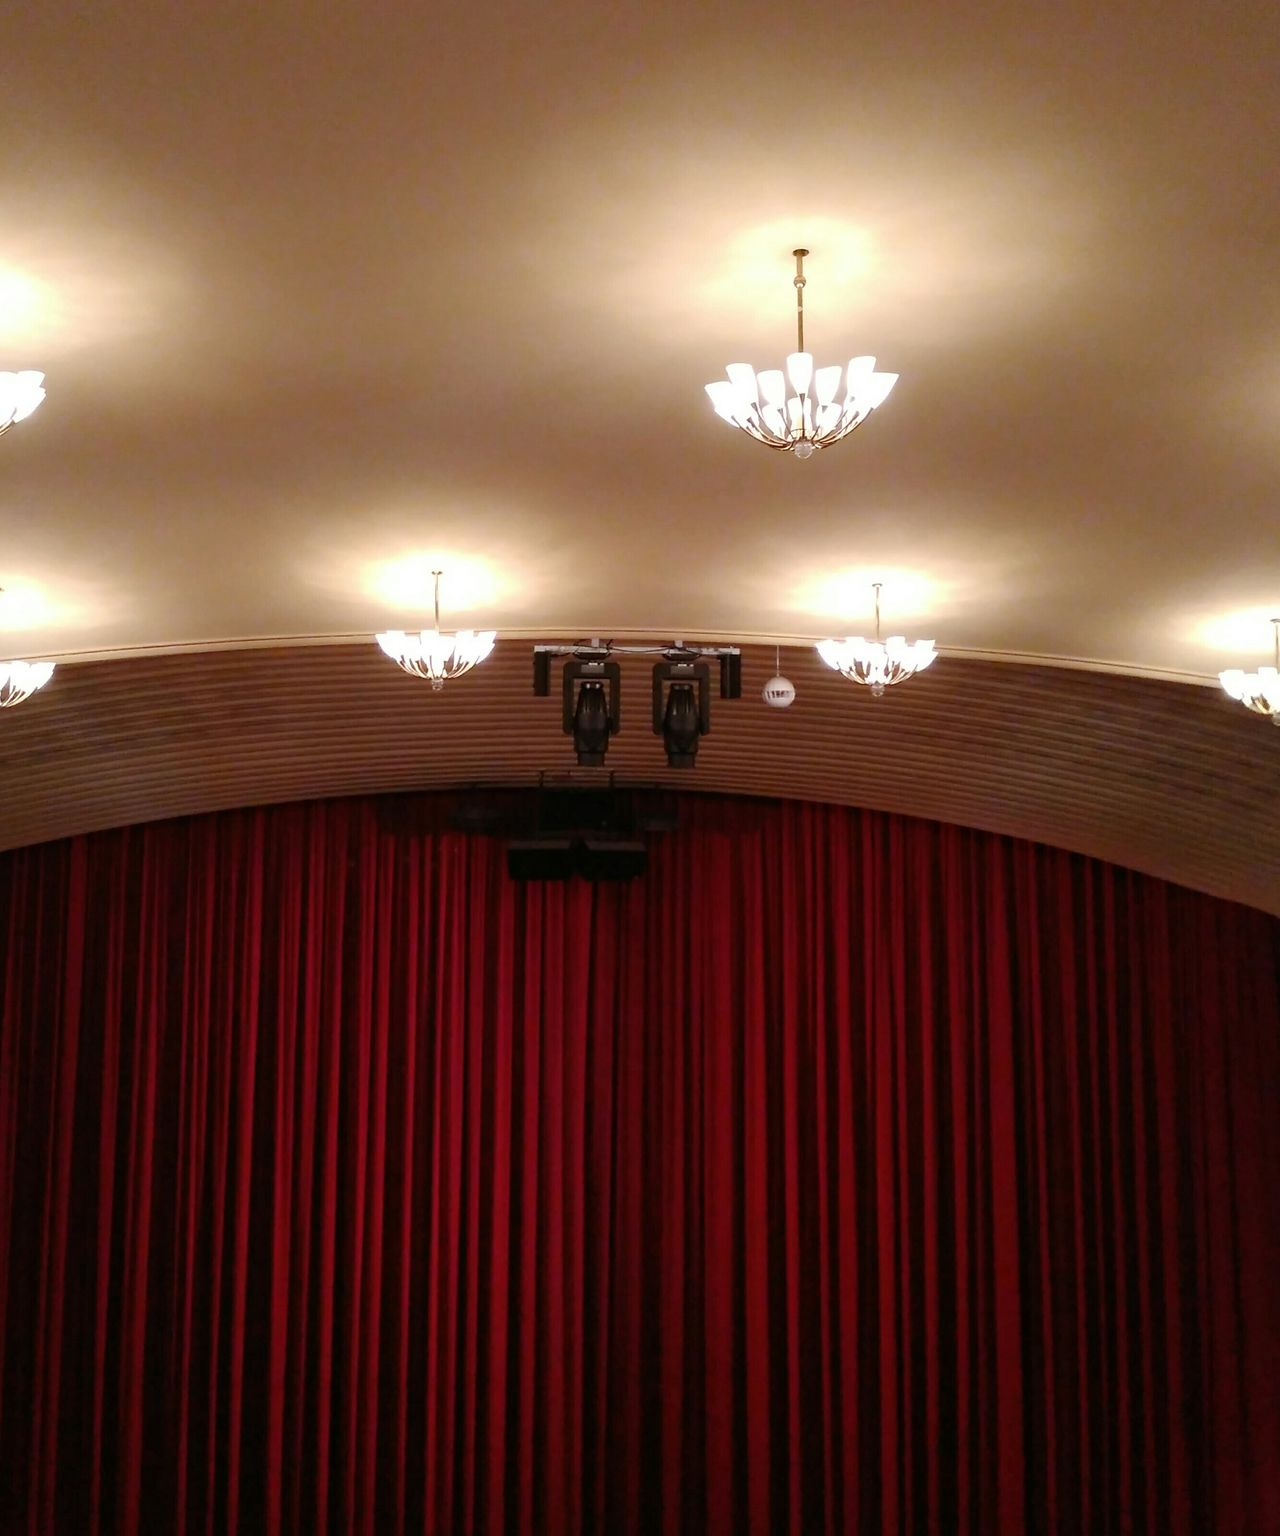 Arts Culture And Entertainment Indoors  Curtain Red Stage - Performance Space Architecture No People Auditorium Performing Arts Event Spotlight Bühne Stage Theater Theatre Schauspiel Light Chandelier TheWeekOnEyeEM Performing Arts The Secret Spaces